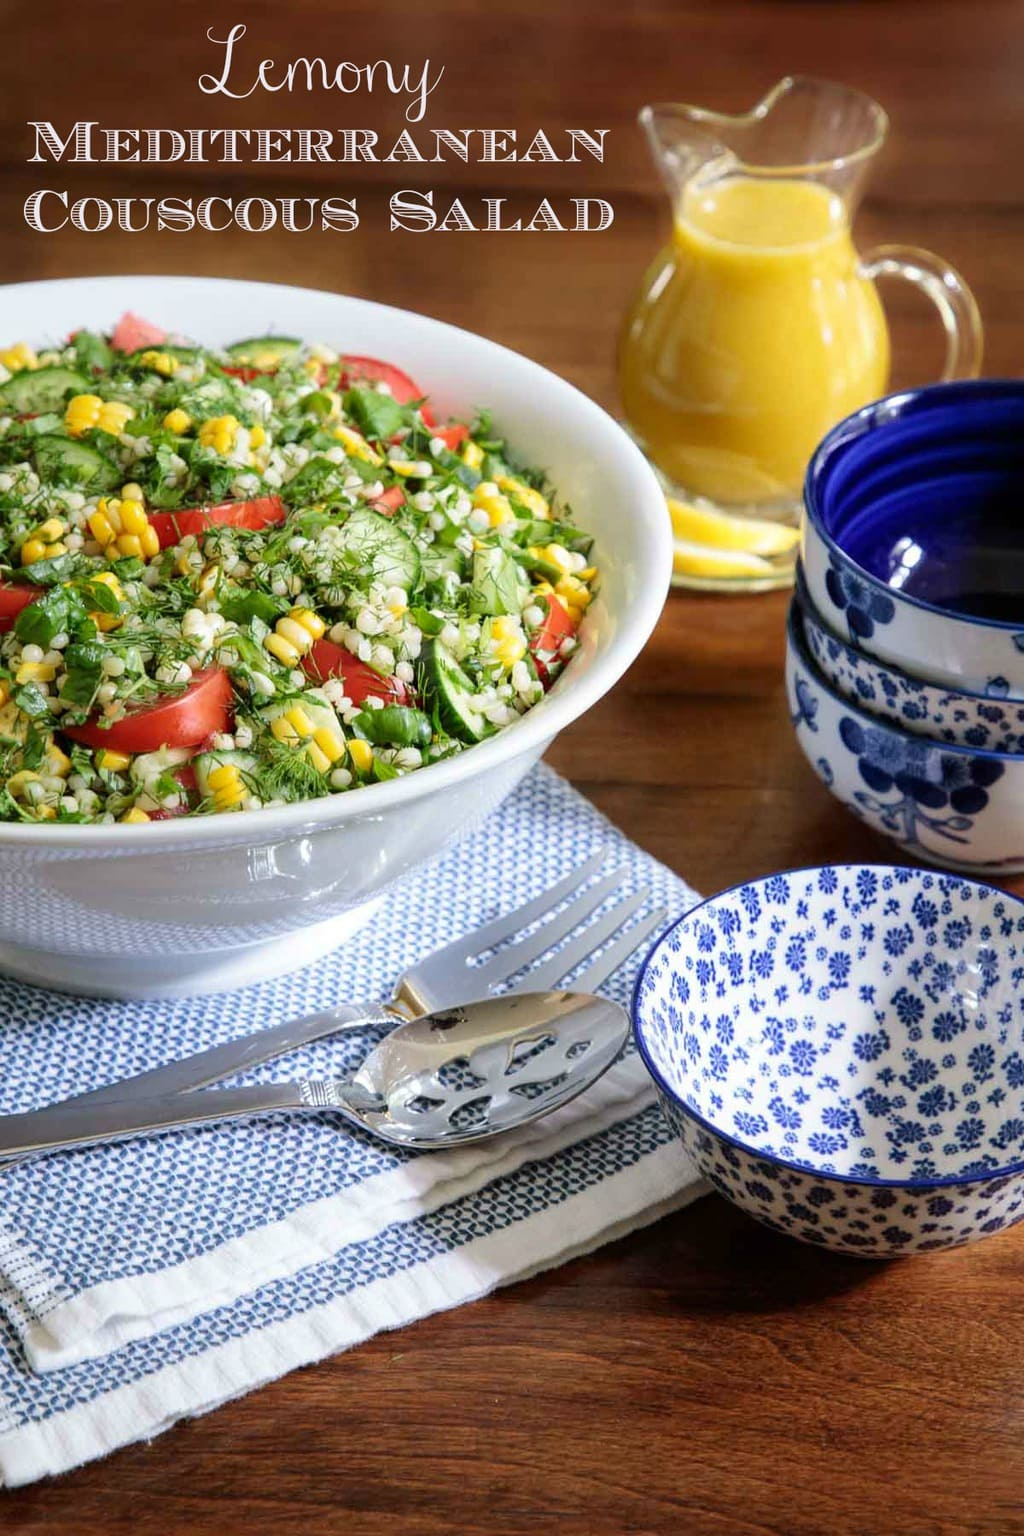 This Mediterranean Couscous Salad combines pearl pasta, crisp cucumbers, juicy tomatoes, tender corn and ribbons of fresh spinach to create a healthy, delicious salad. A sunny lemon dressing and lots of fresh herbs take it over the top! #couscoussalad, #summersalad, #healthysalad, #pastasalad, #lotsofveggies, #freshherbsalad